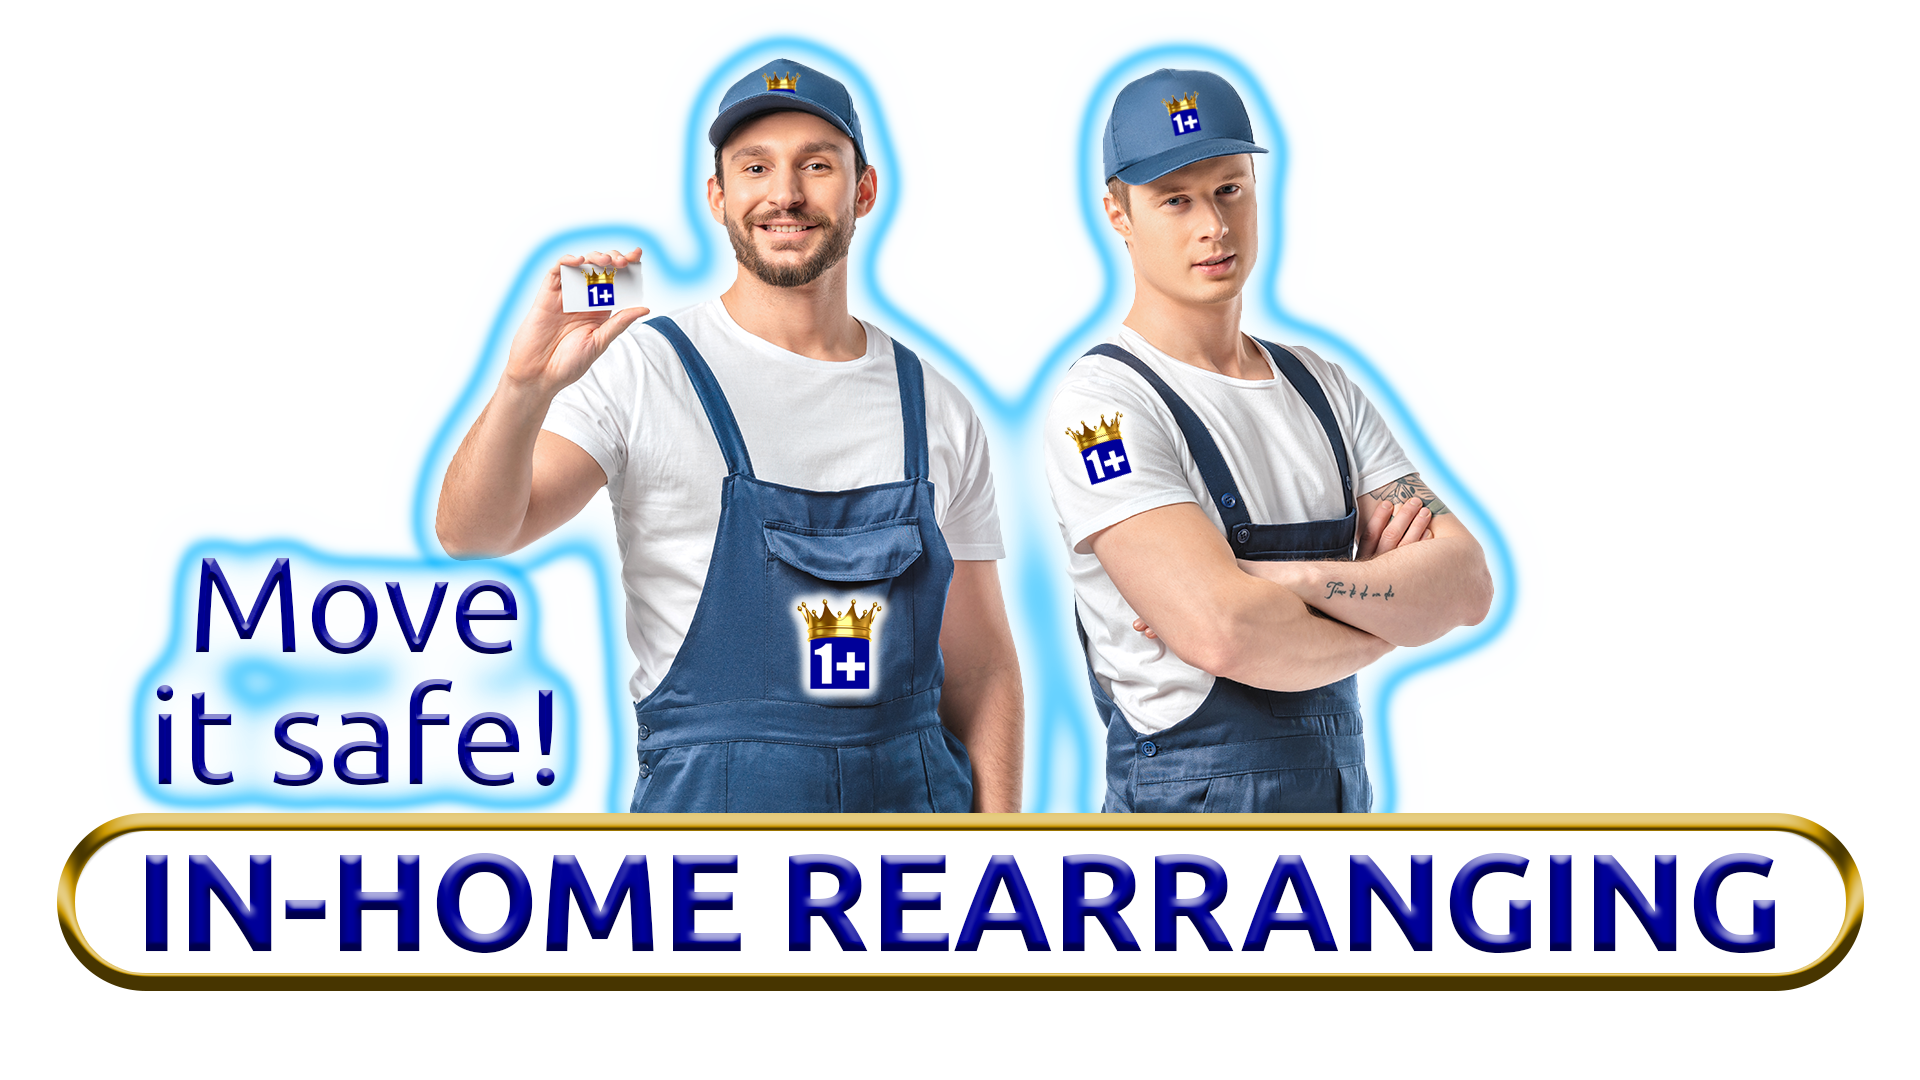 Legendary In-Home Rearranging By 1+Movers - Moving - Movers- Move - Houston Texas - Nassau Bay Texas - Seabrook Texas - Kemah Texas 6